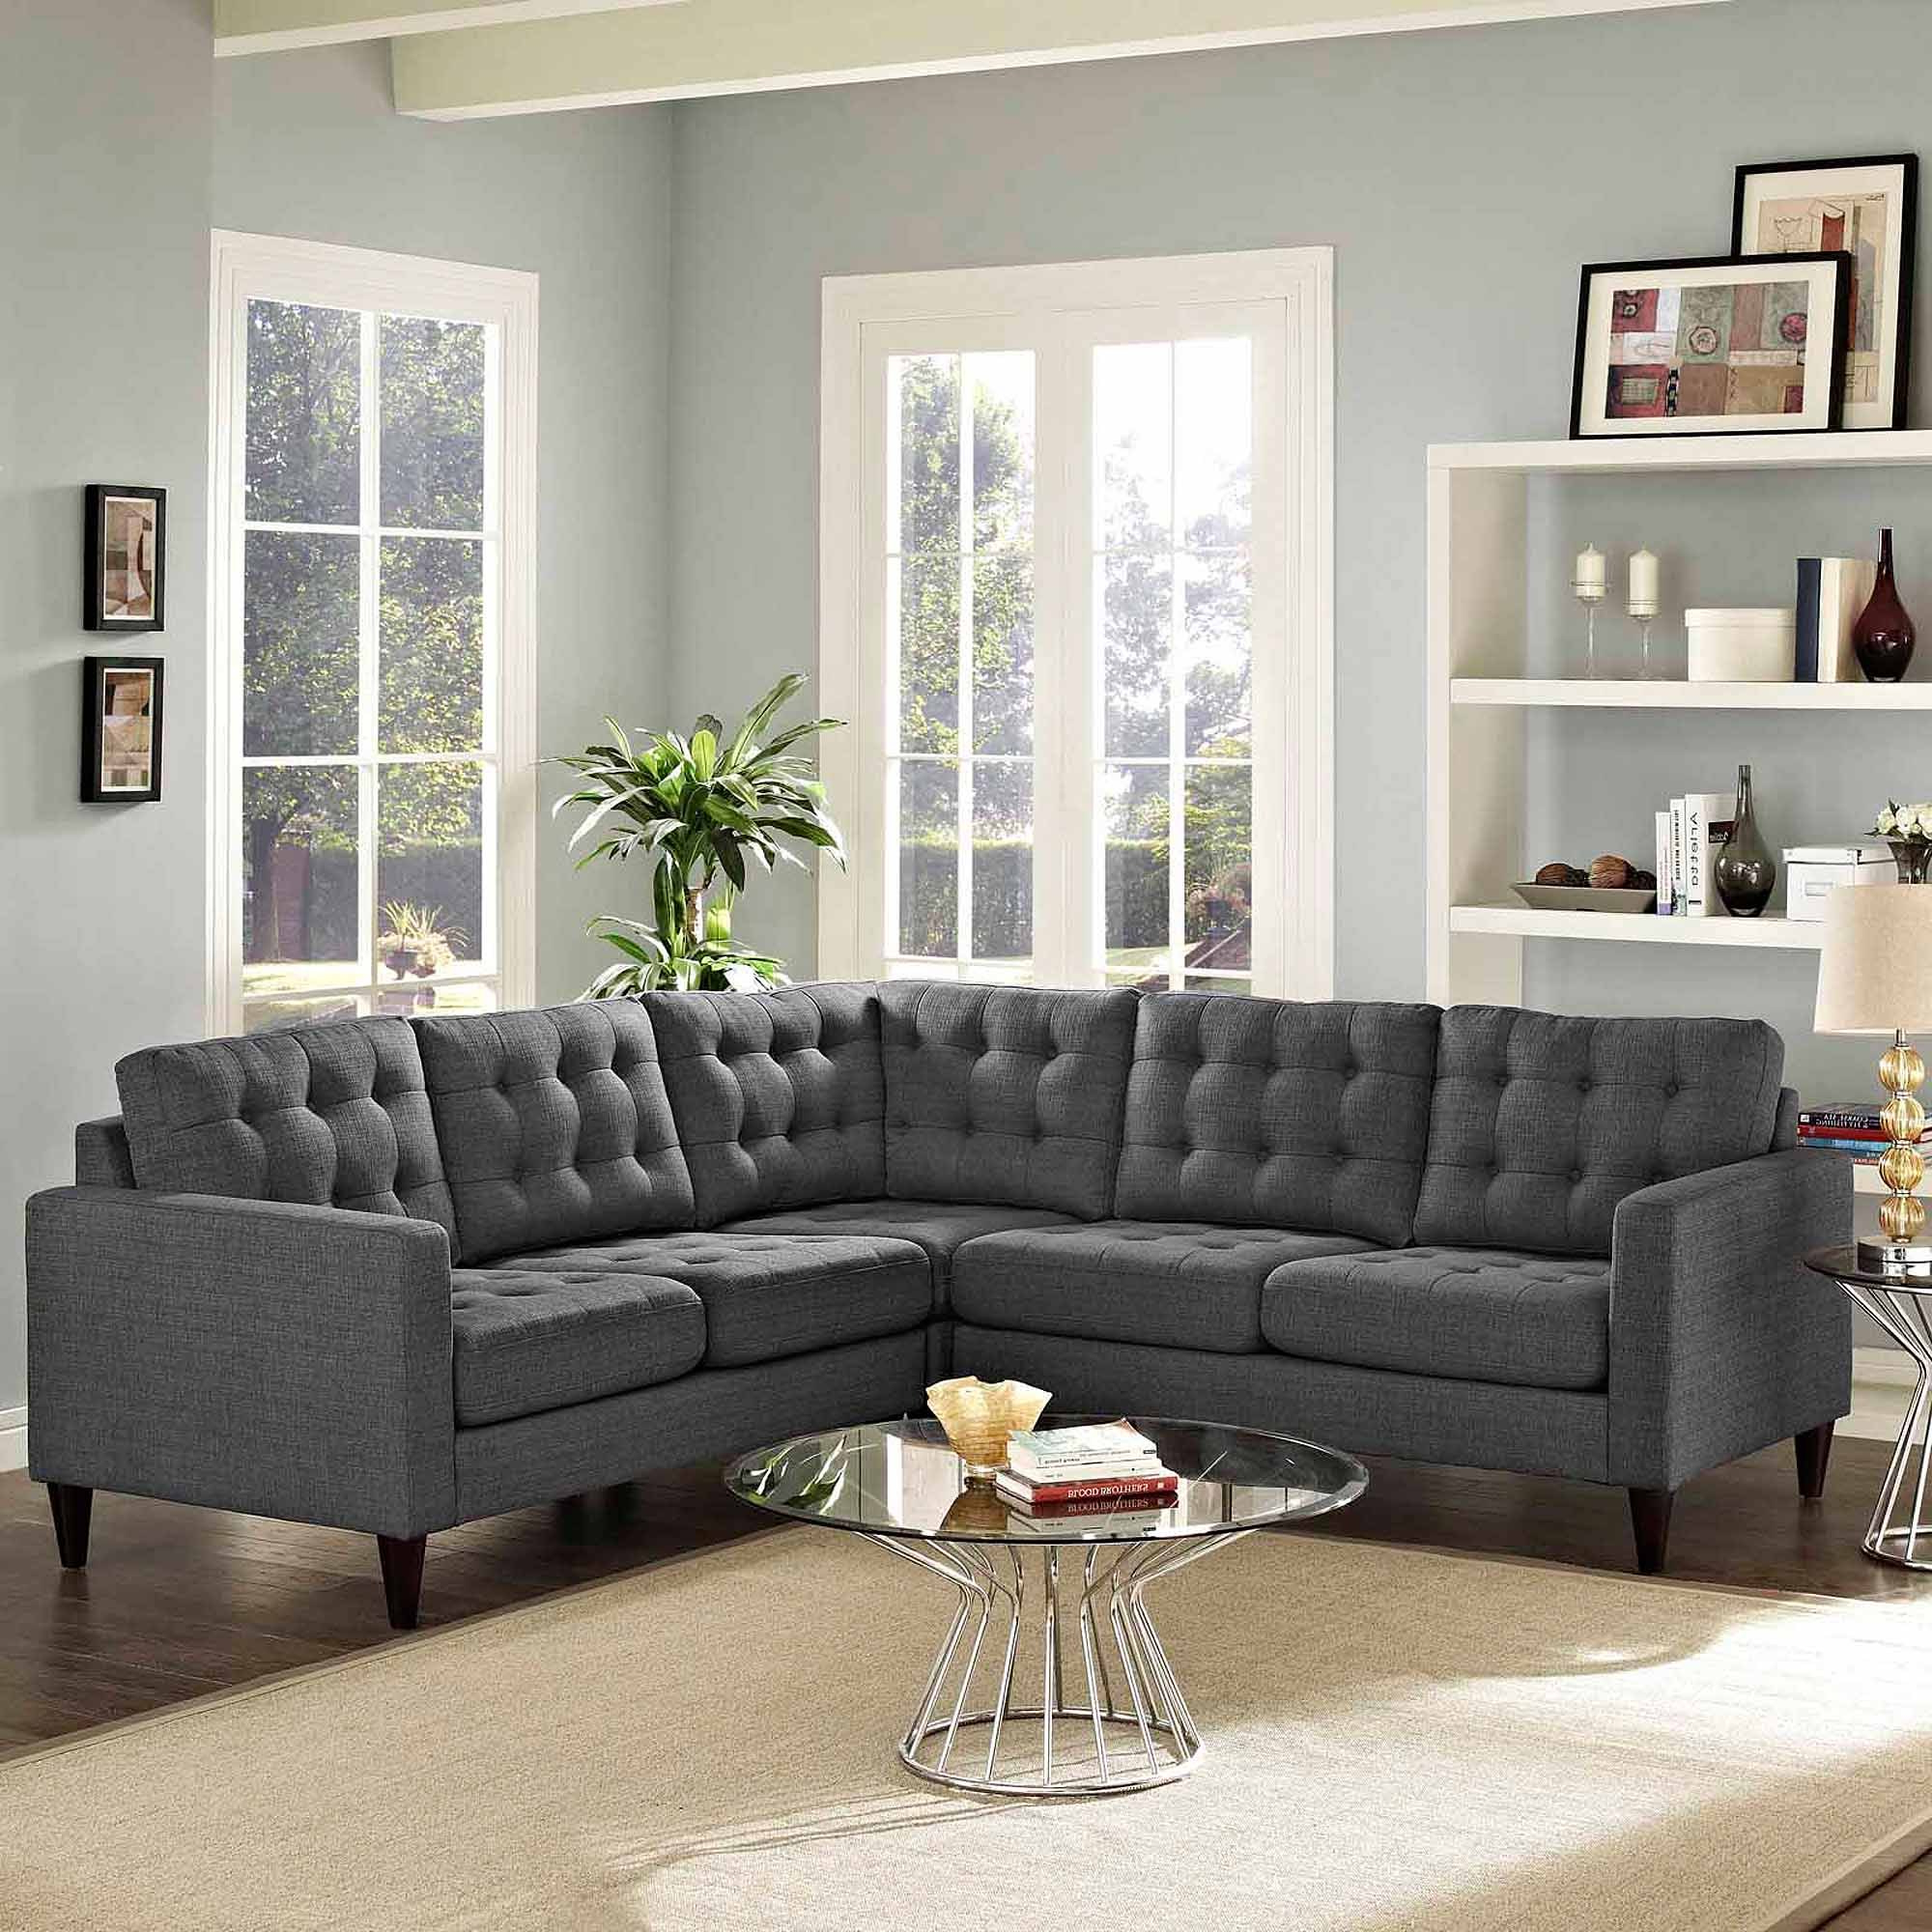 Moda 3 Piece Sectional With Chaise With Regard To Soane 3 Piece Sectionals By Nate Berkus And Jeremiah Brent (View 4 of 20)